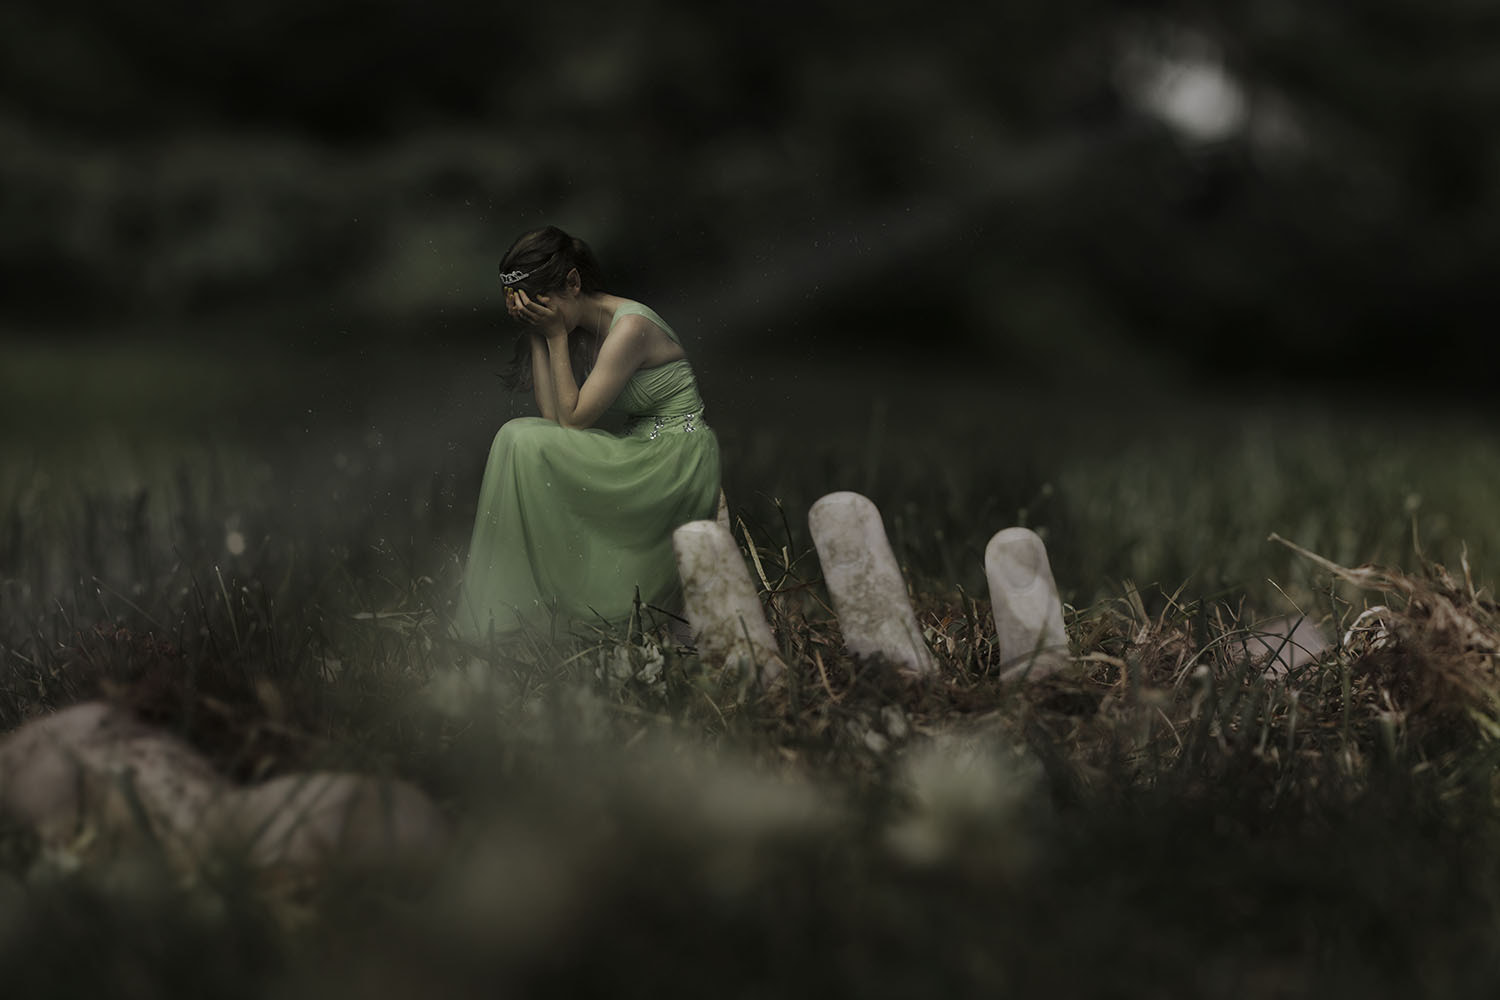 Photograph mourning shall come by Lauren Parker on 500px